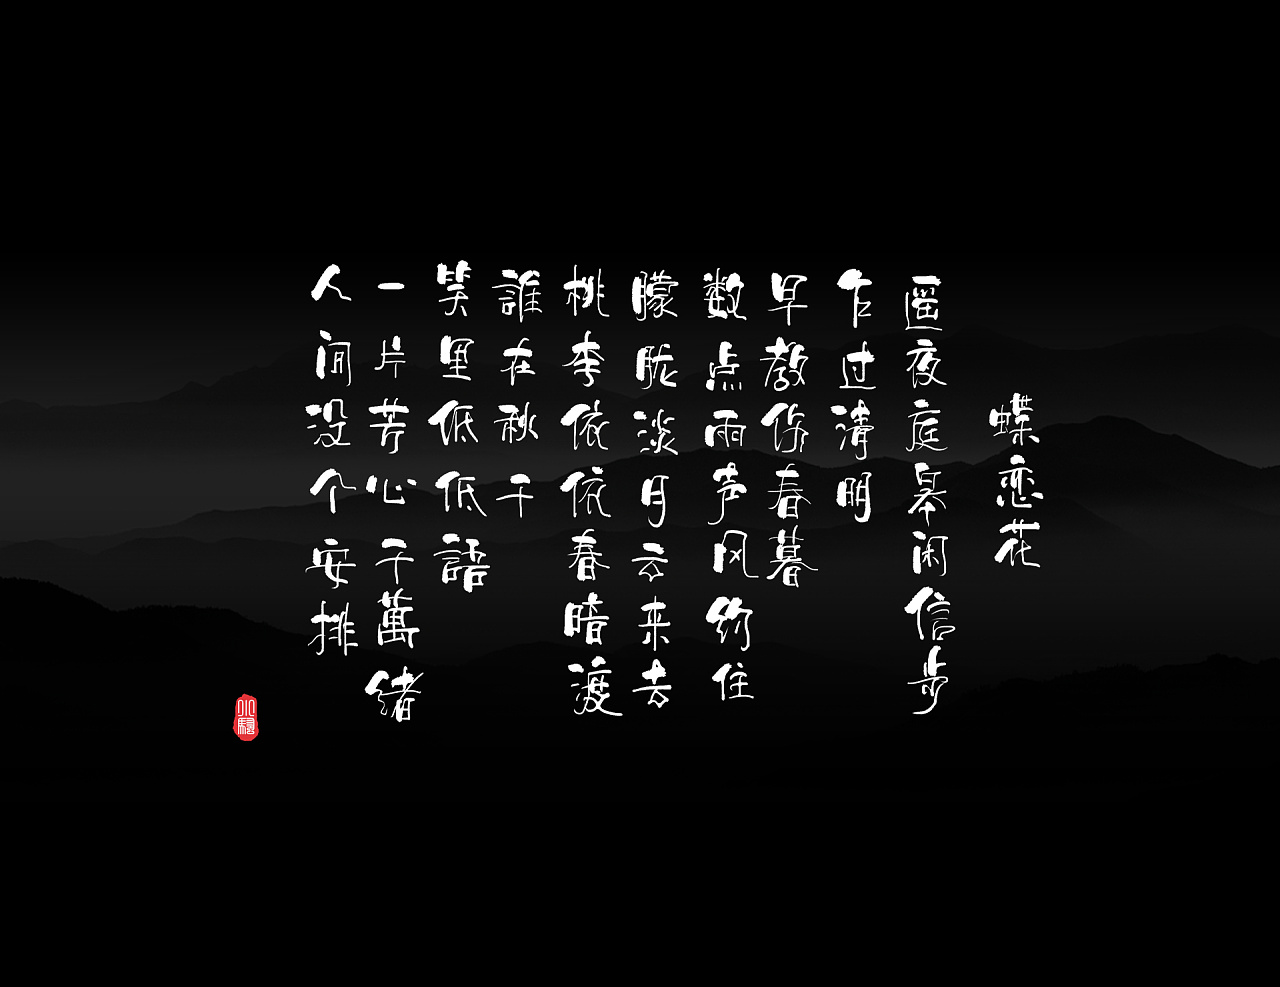 chinesefontdesign.com 2018 02 04 12 37 22 947199 50P Li Sao of Tang Song style Chinese Design Inspiration